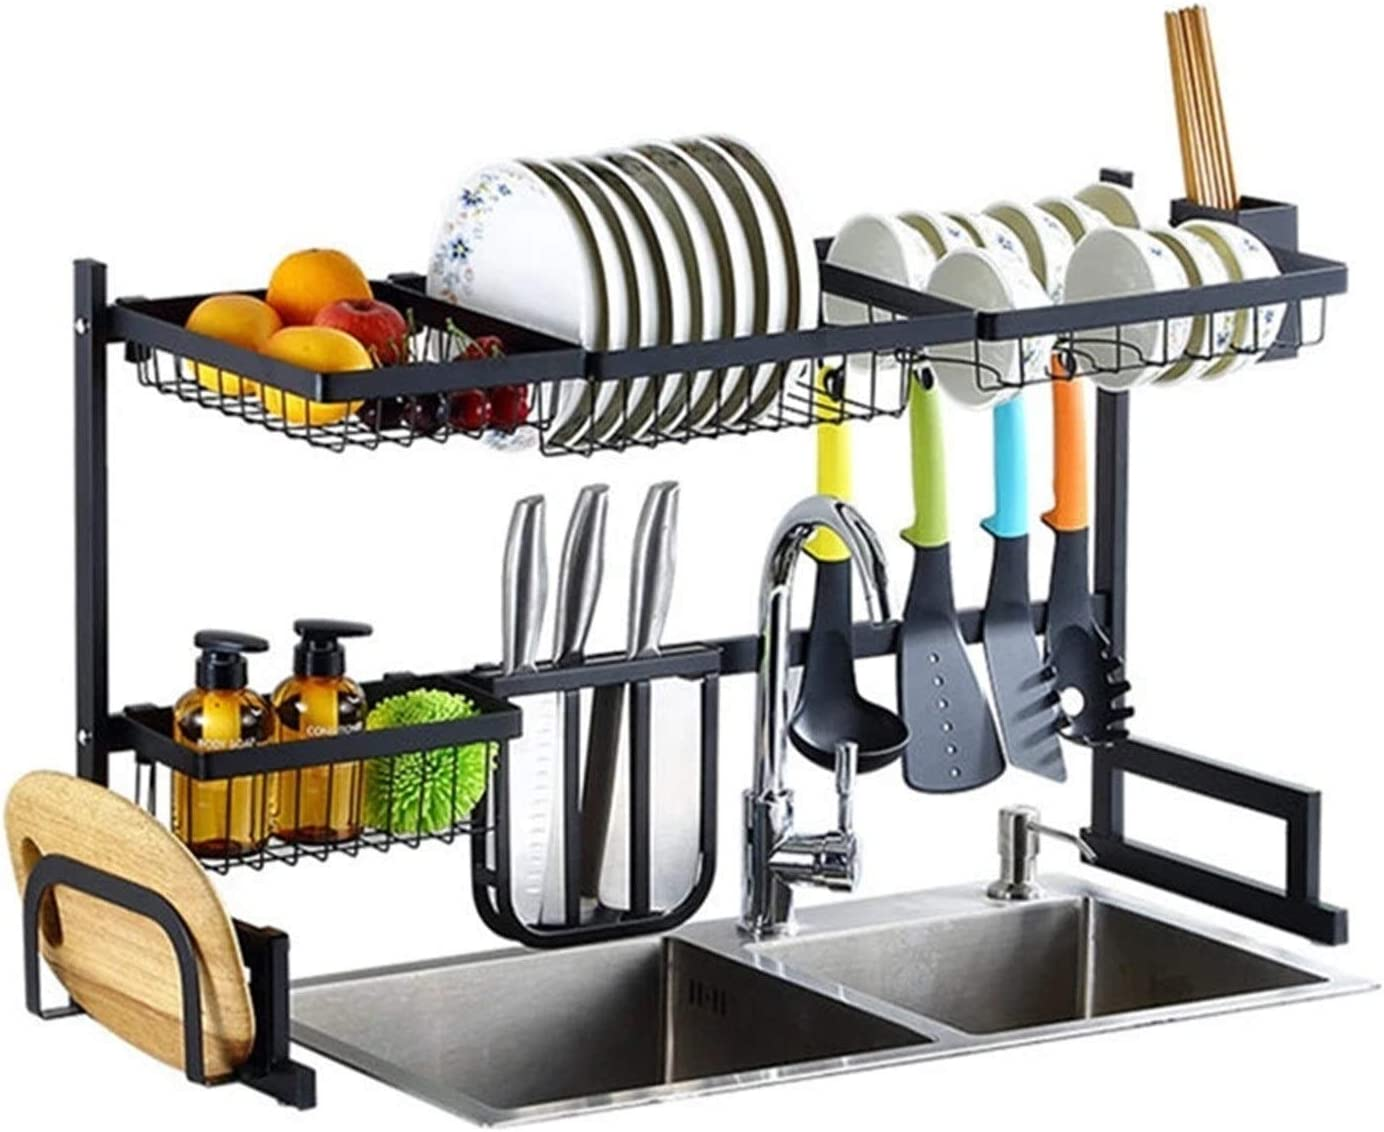 Dish Drying Rack Latest item Sink Storage Over Dis 65 Ranking TOP1 Kitchen 85CM